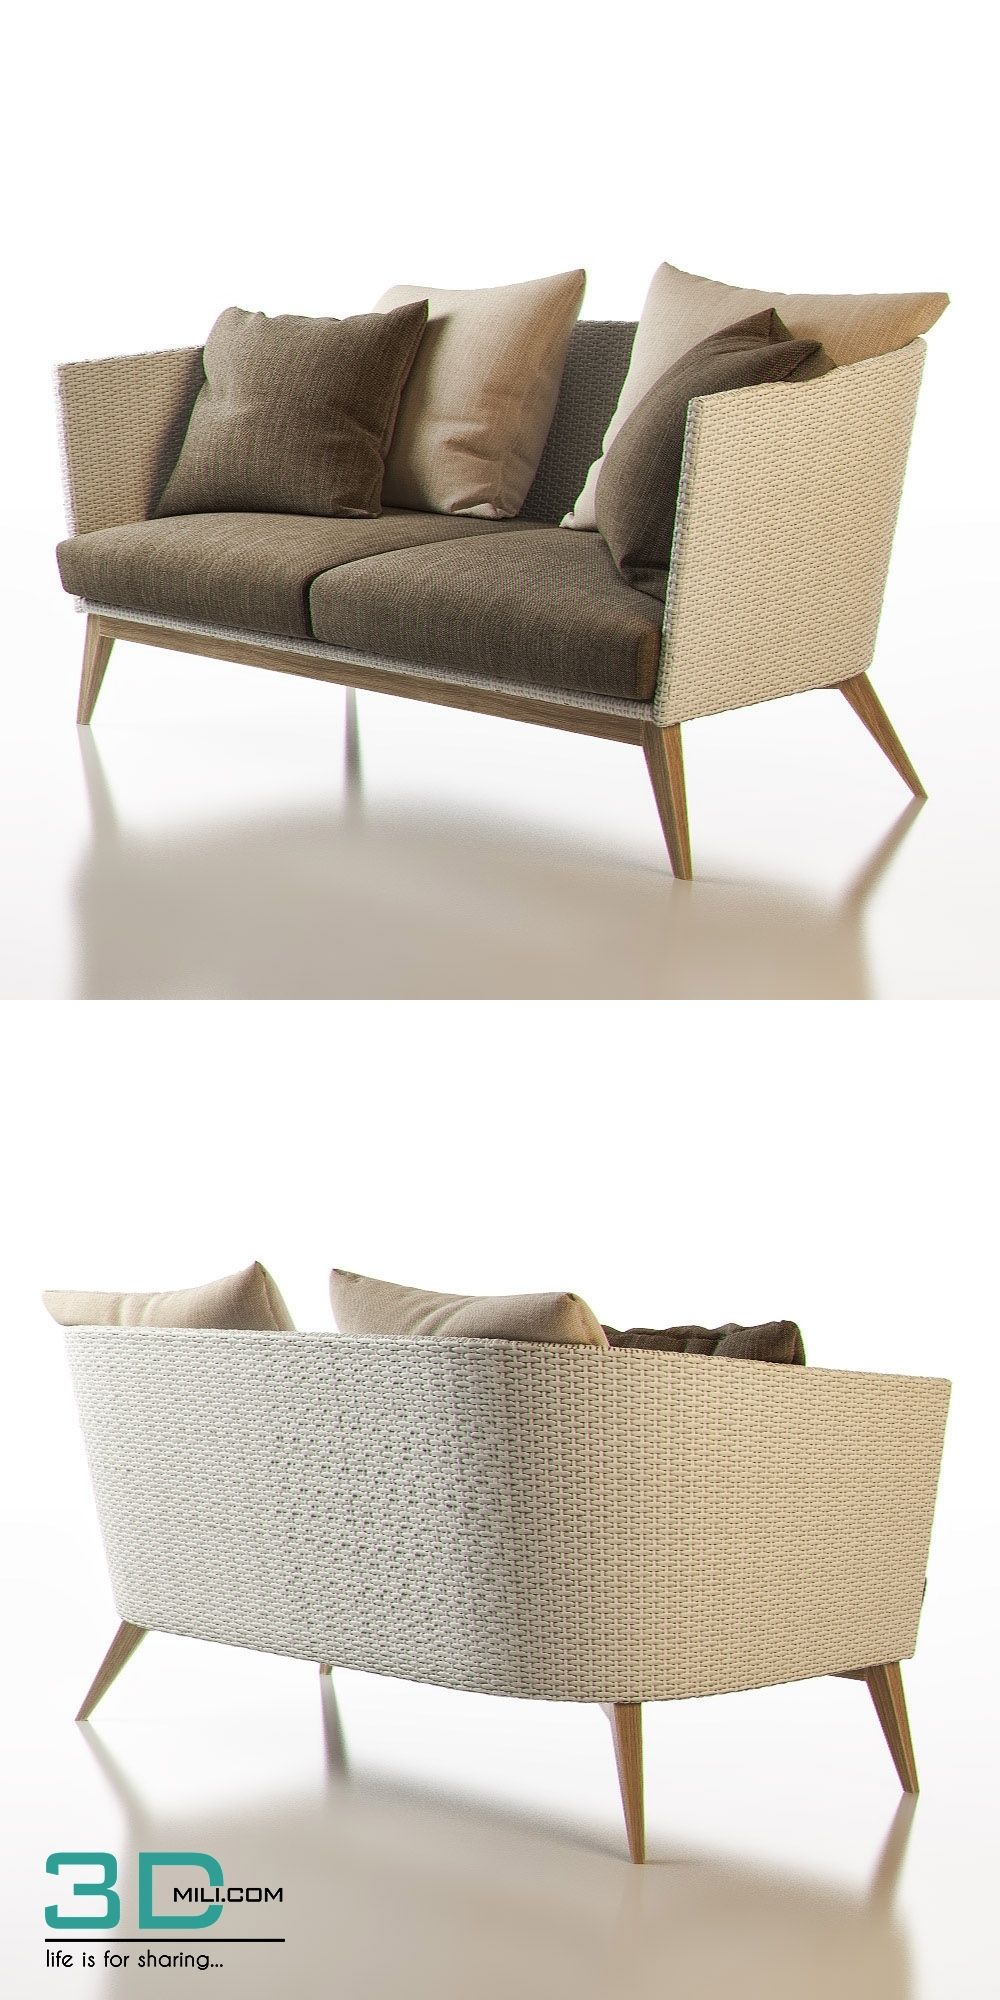 159. Point Arc Outdoor 2 Seater Sofa